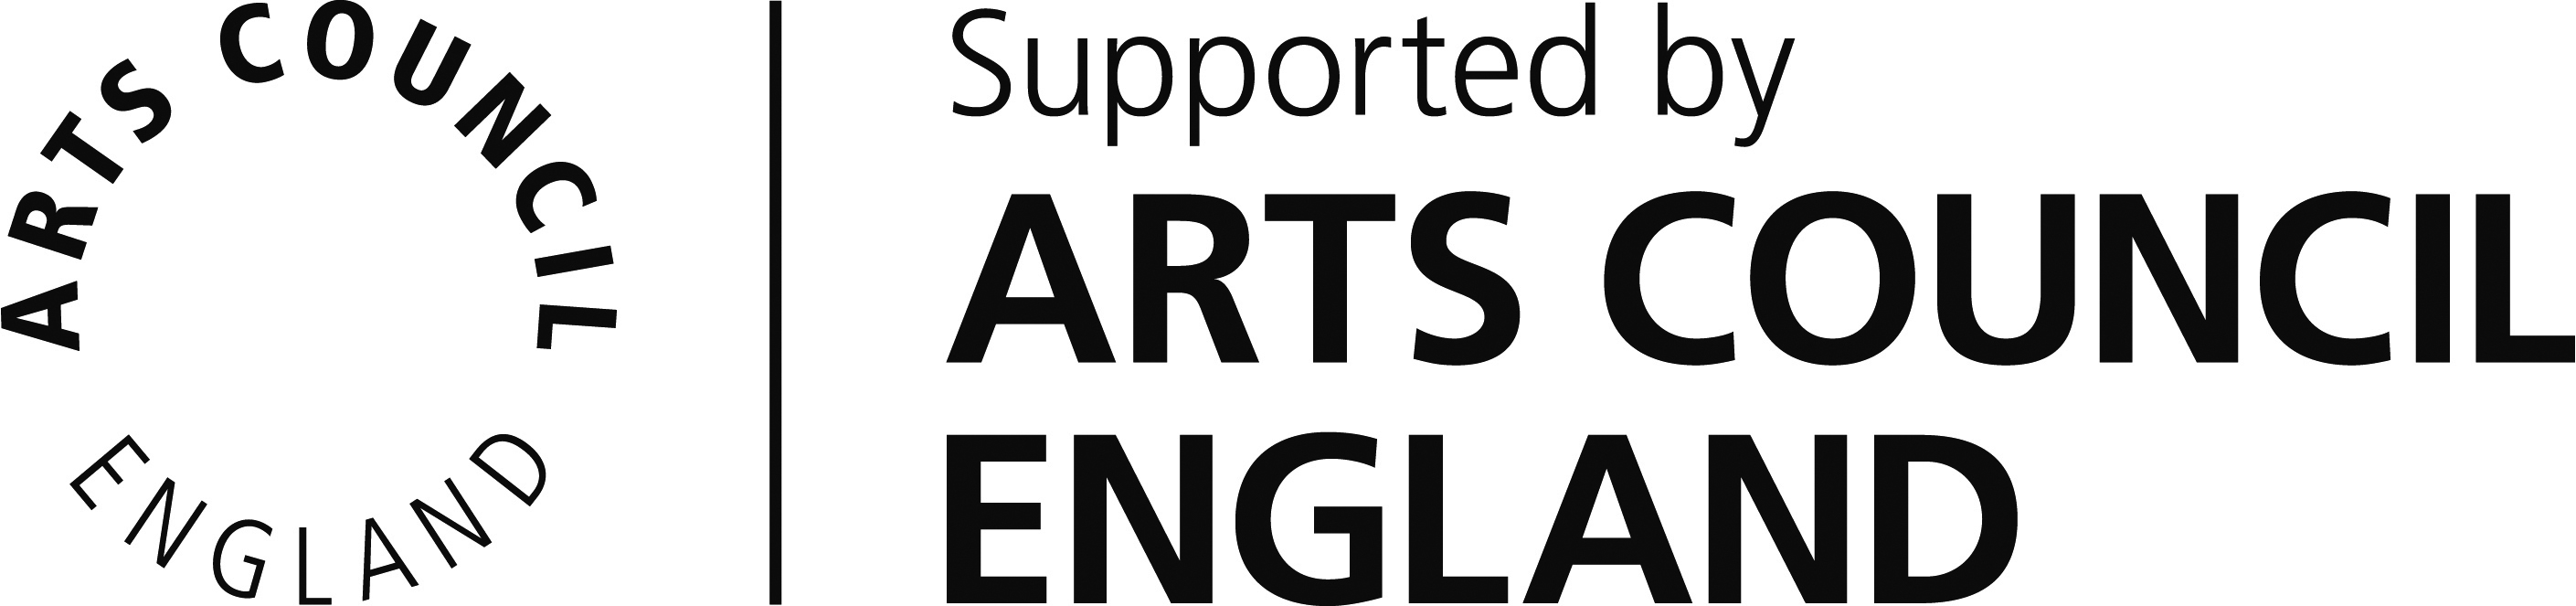 Films - Carter logos - Arts Council England Supported By